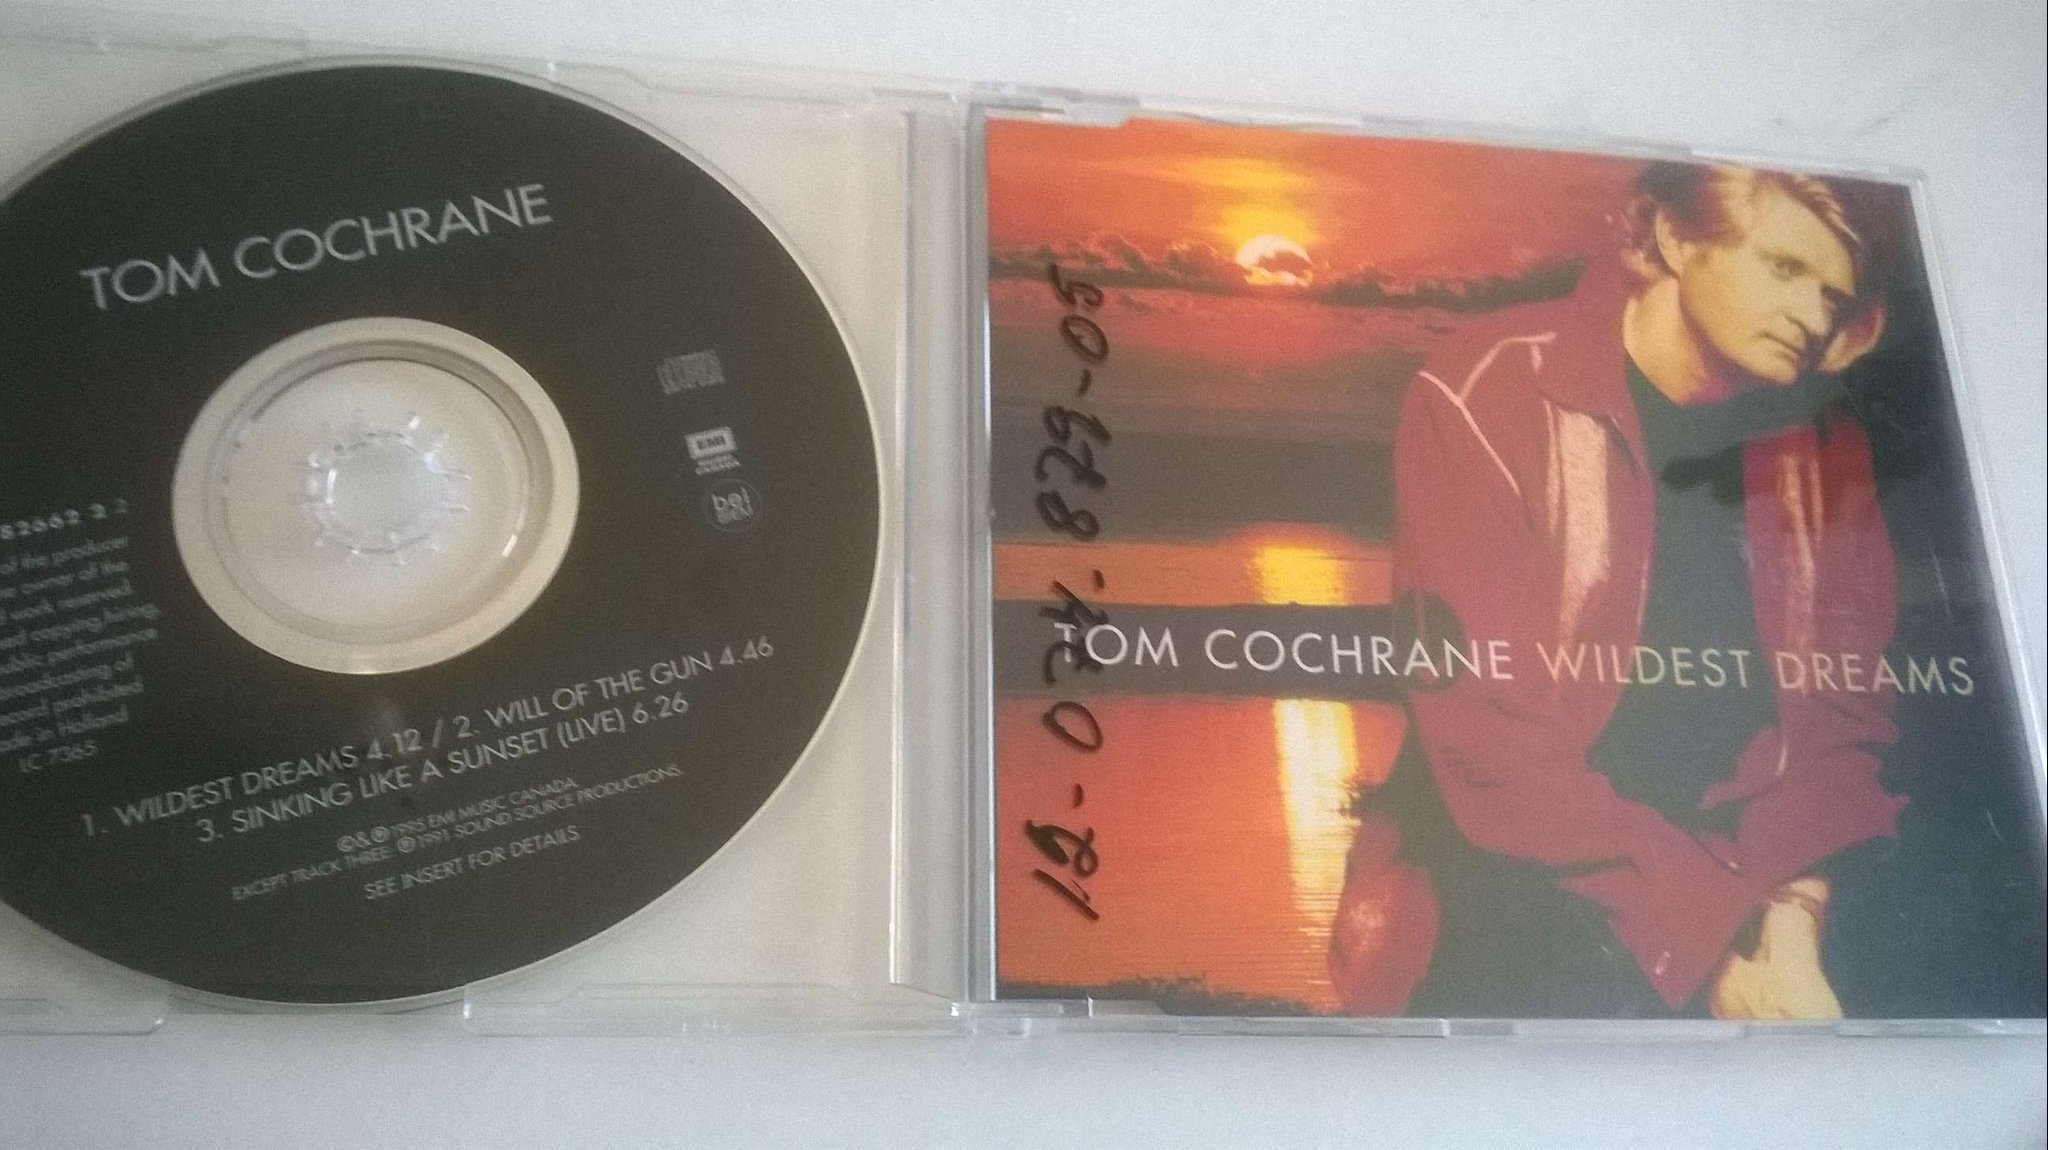 Tom Cochrane - Wildest Dreams, CD